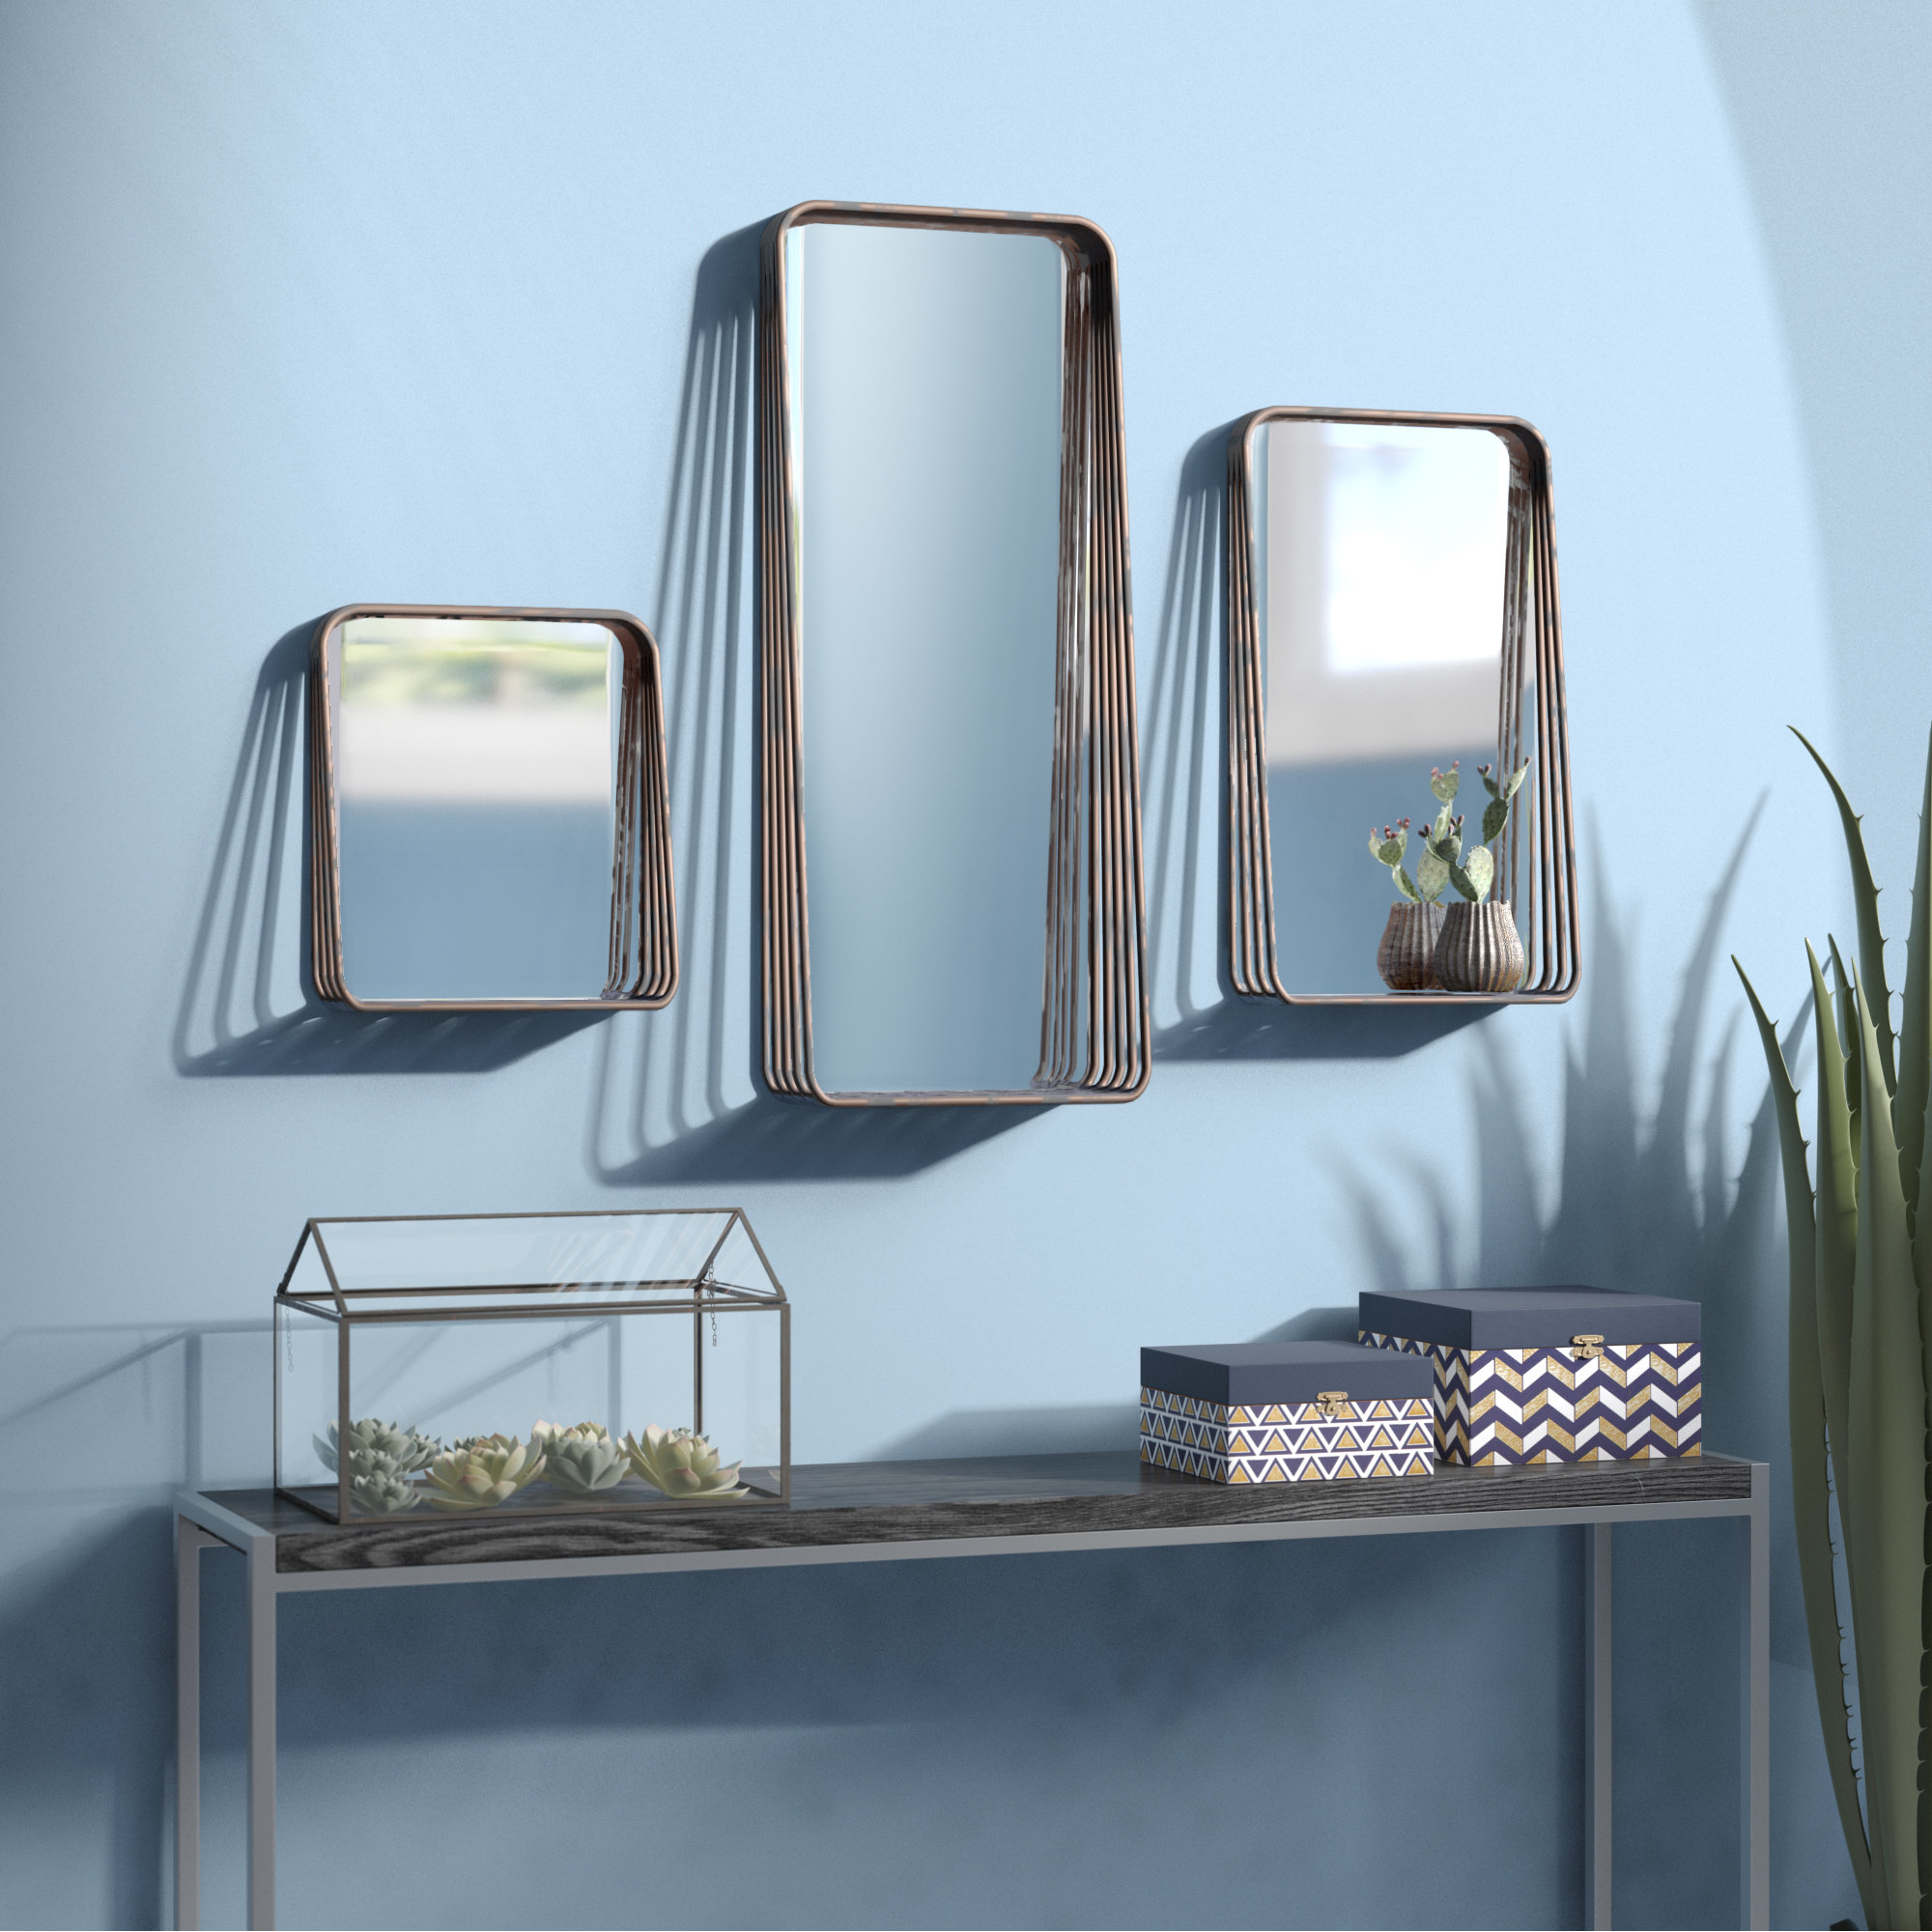 Wrought Studio Eide 3 Piece Tall Metal Framed Mirror Set & Reviews Inside Most Up To Date 3 Piece Wall Decor Sets By Wrought Studio (View 20 of 20)